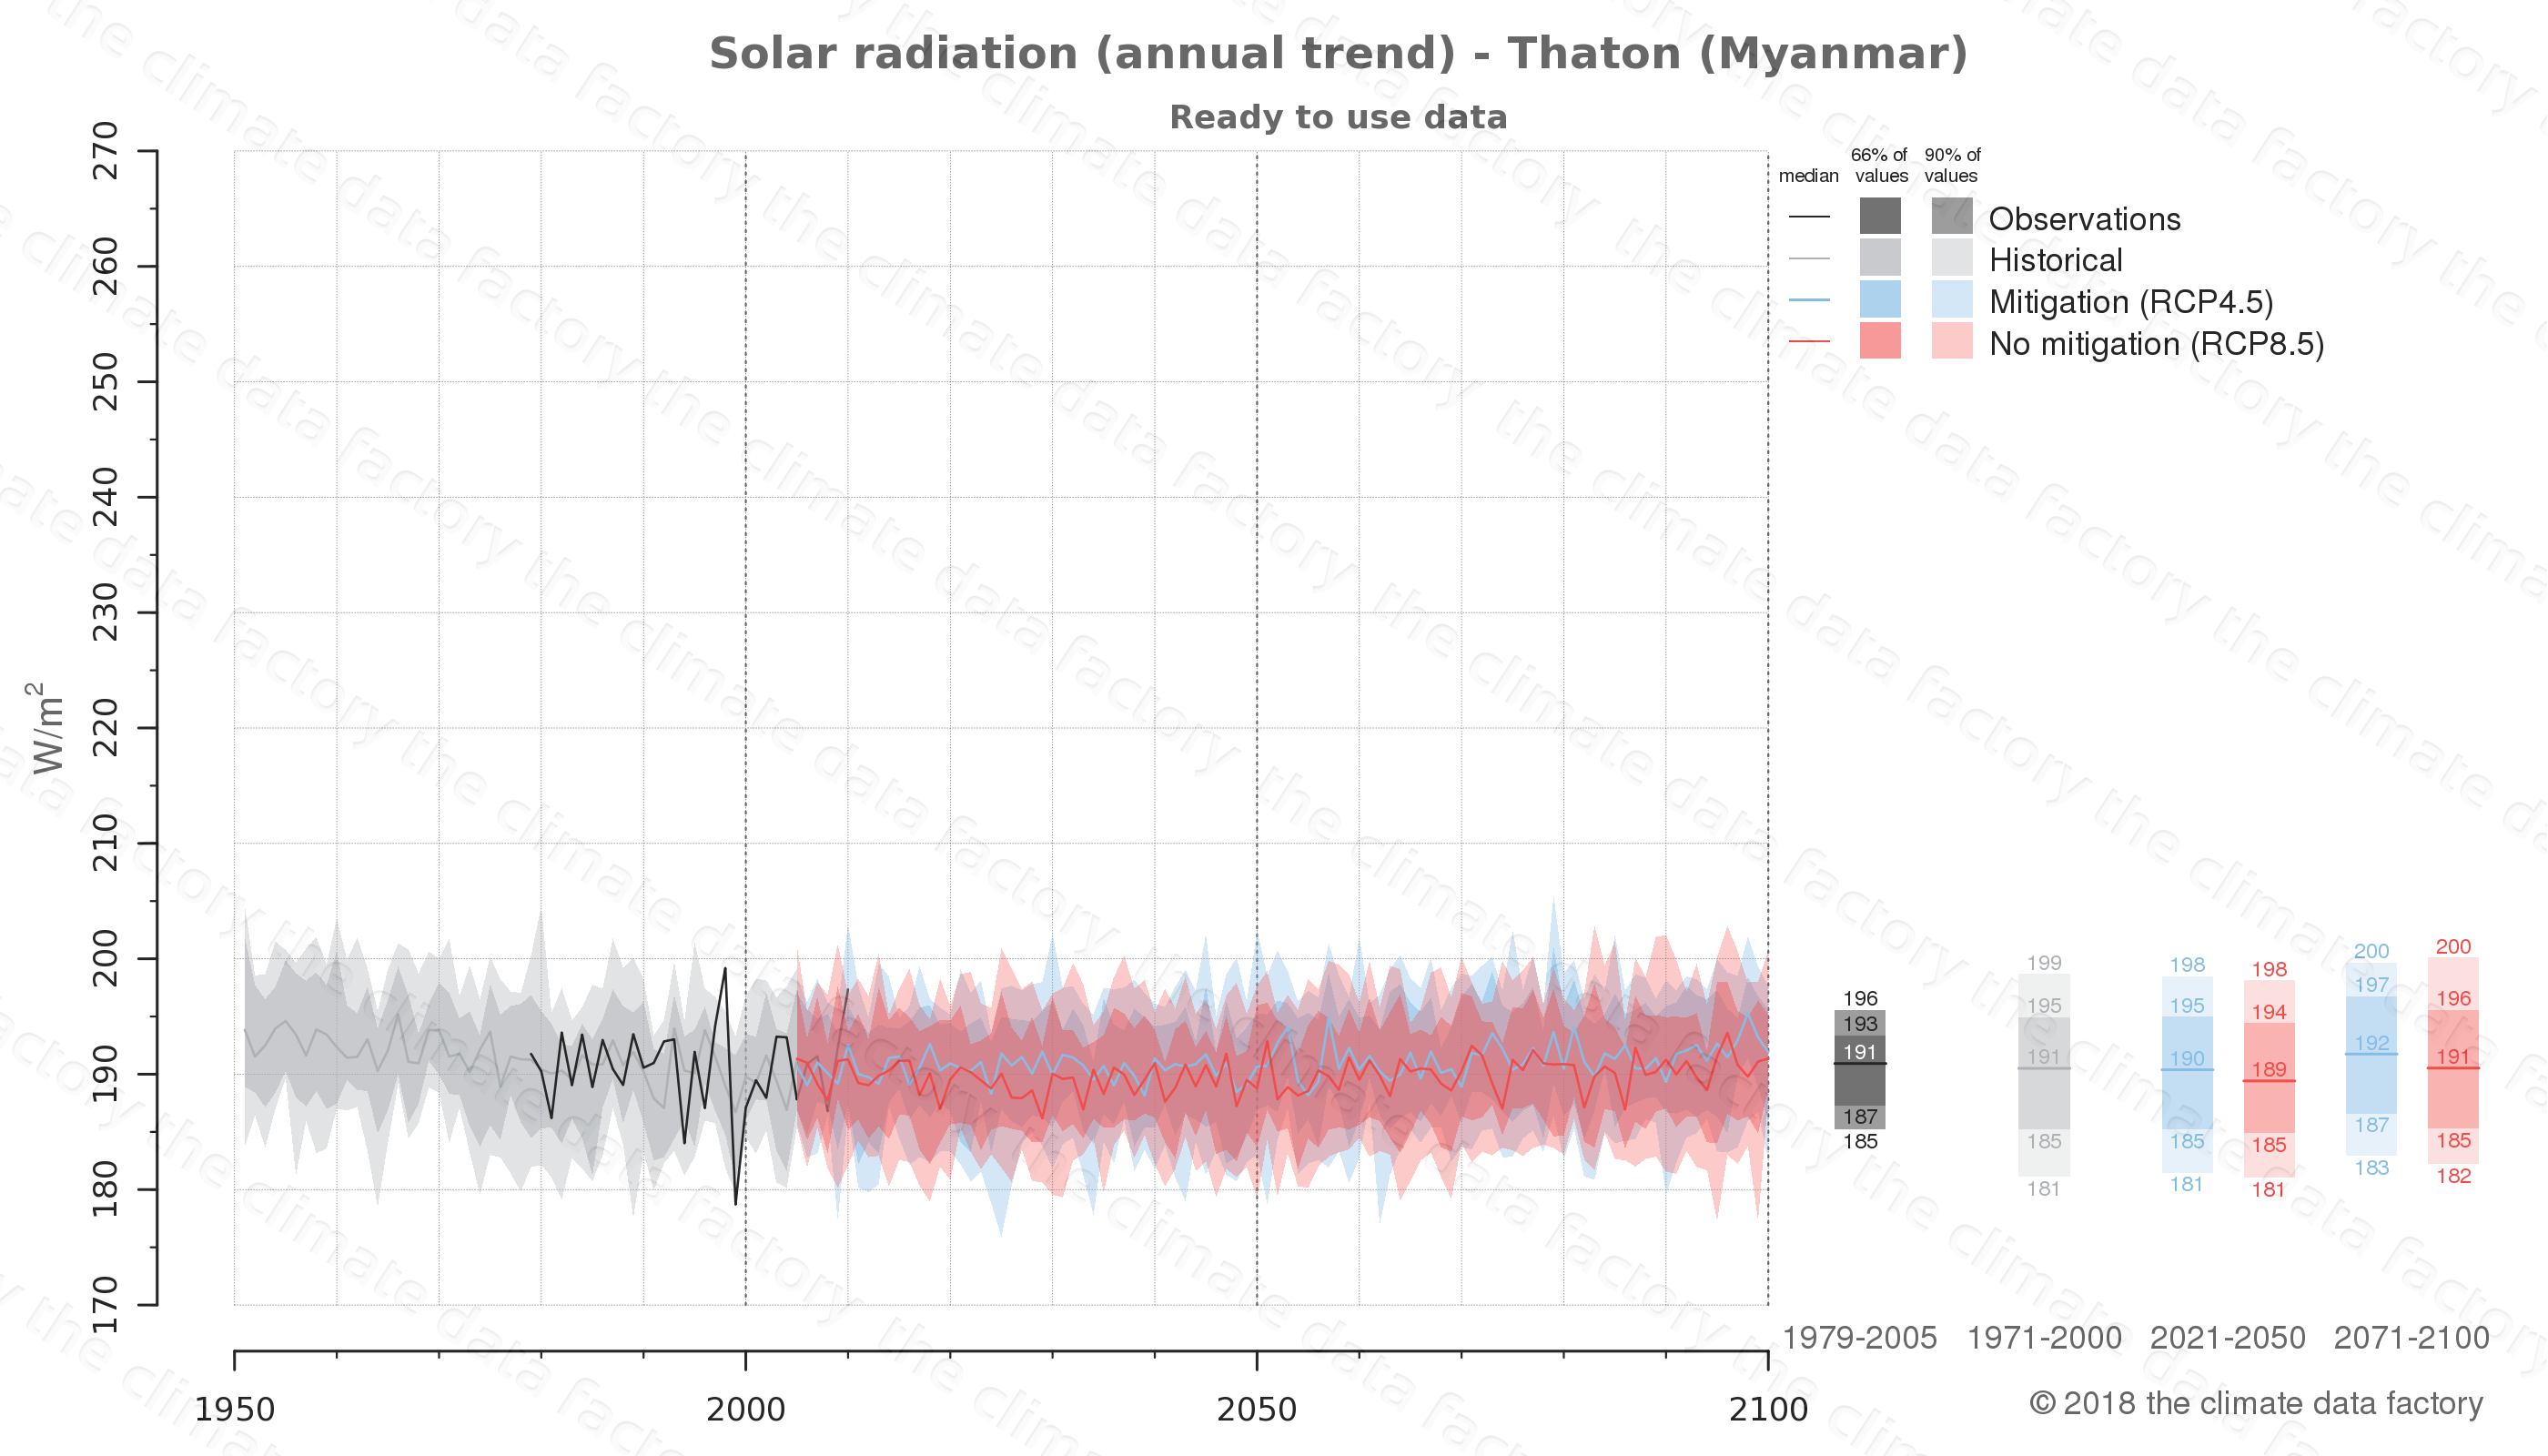 climate change data policy adaptation climate graph city data solar-radiation thaton myanmar